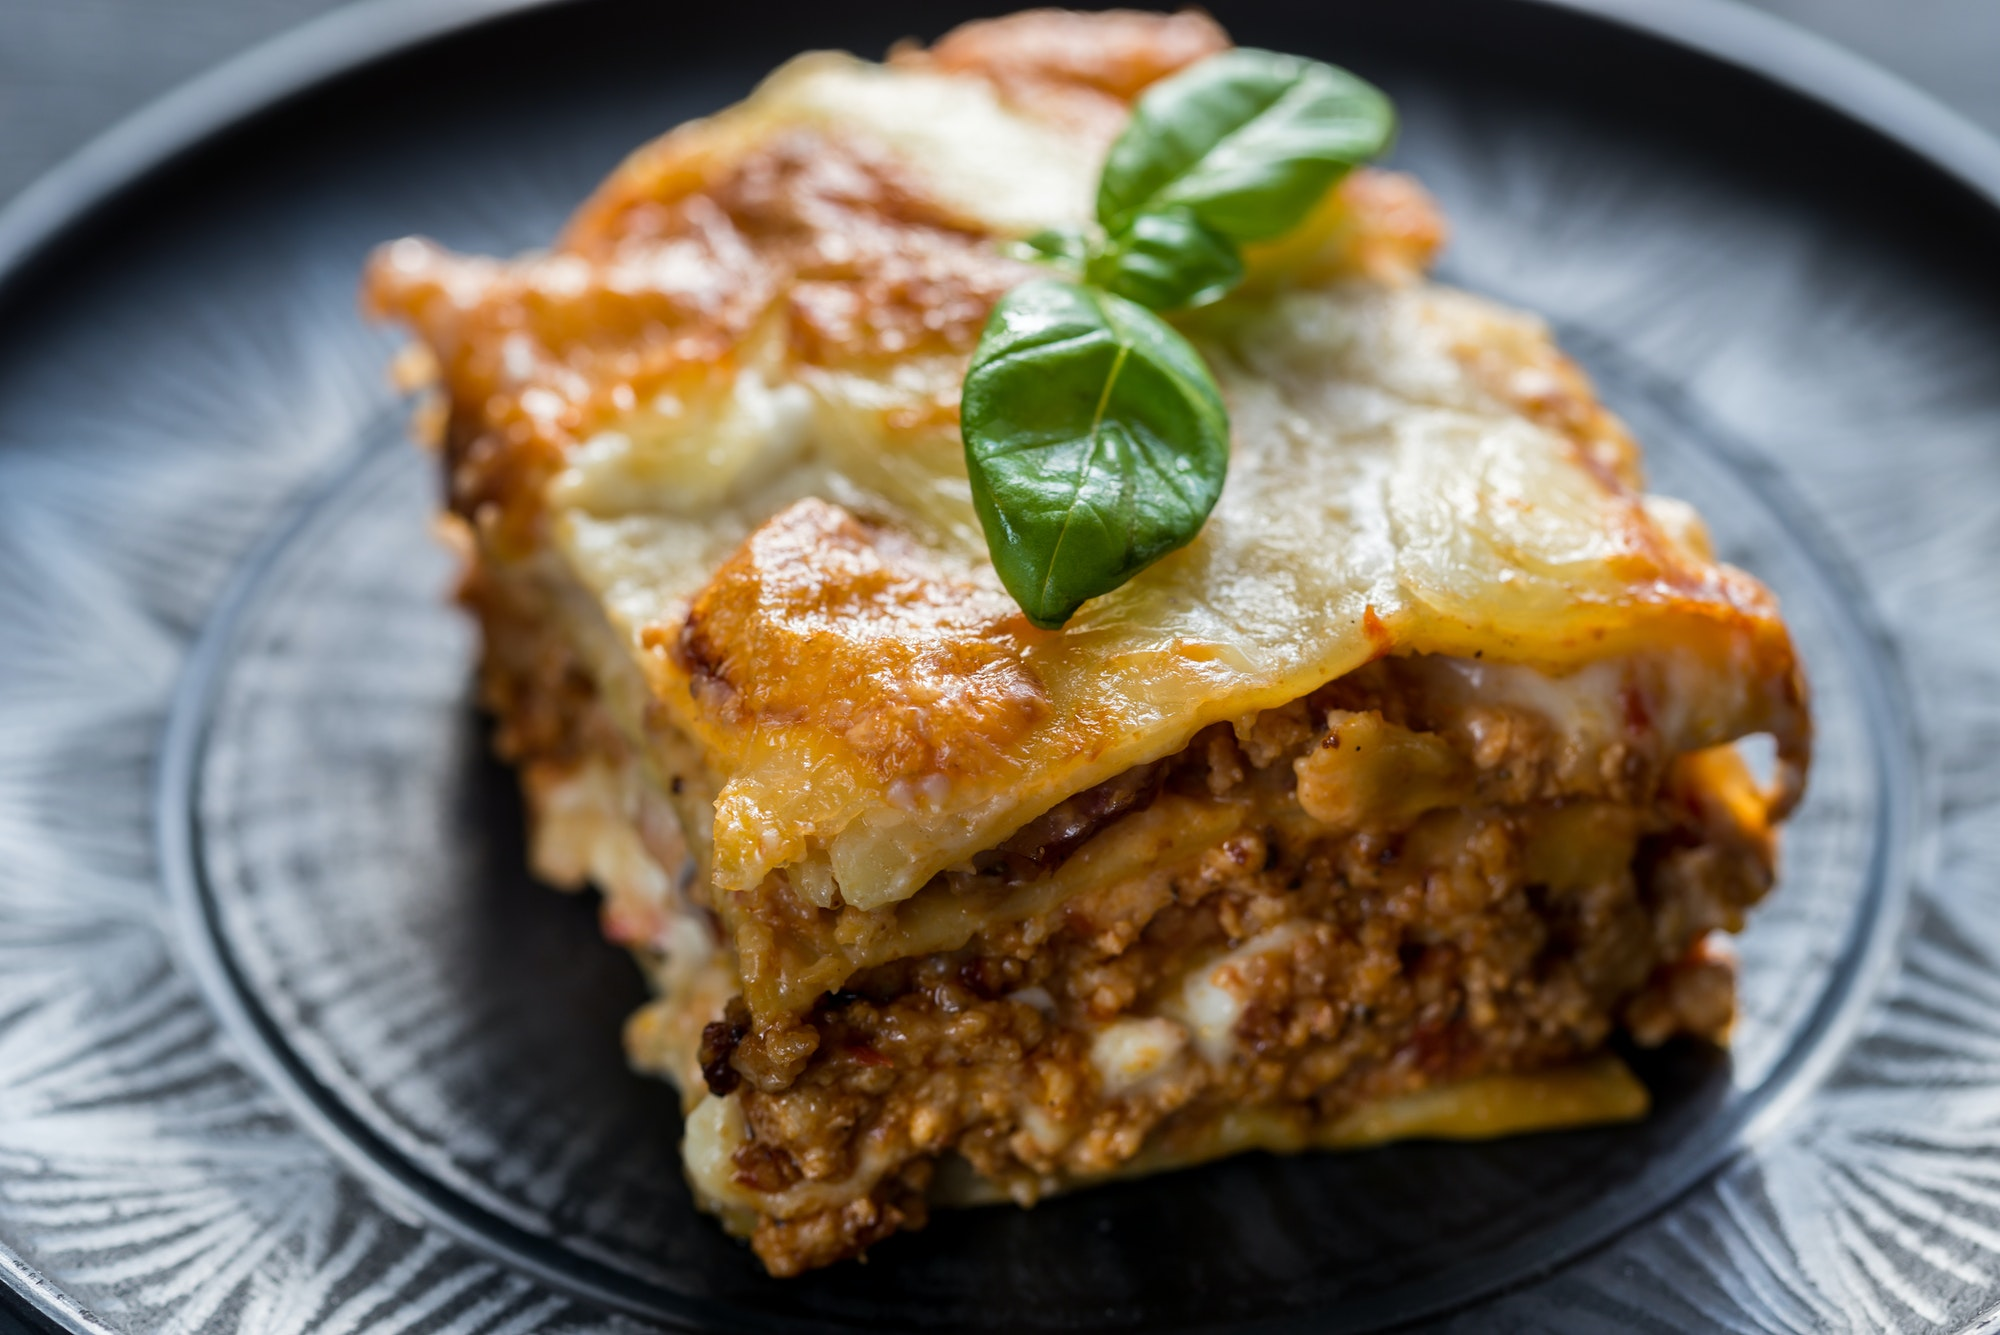 PickFu Mother's Day poll: Lasagna was a favorite dish among many respondents